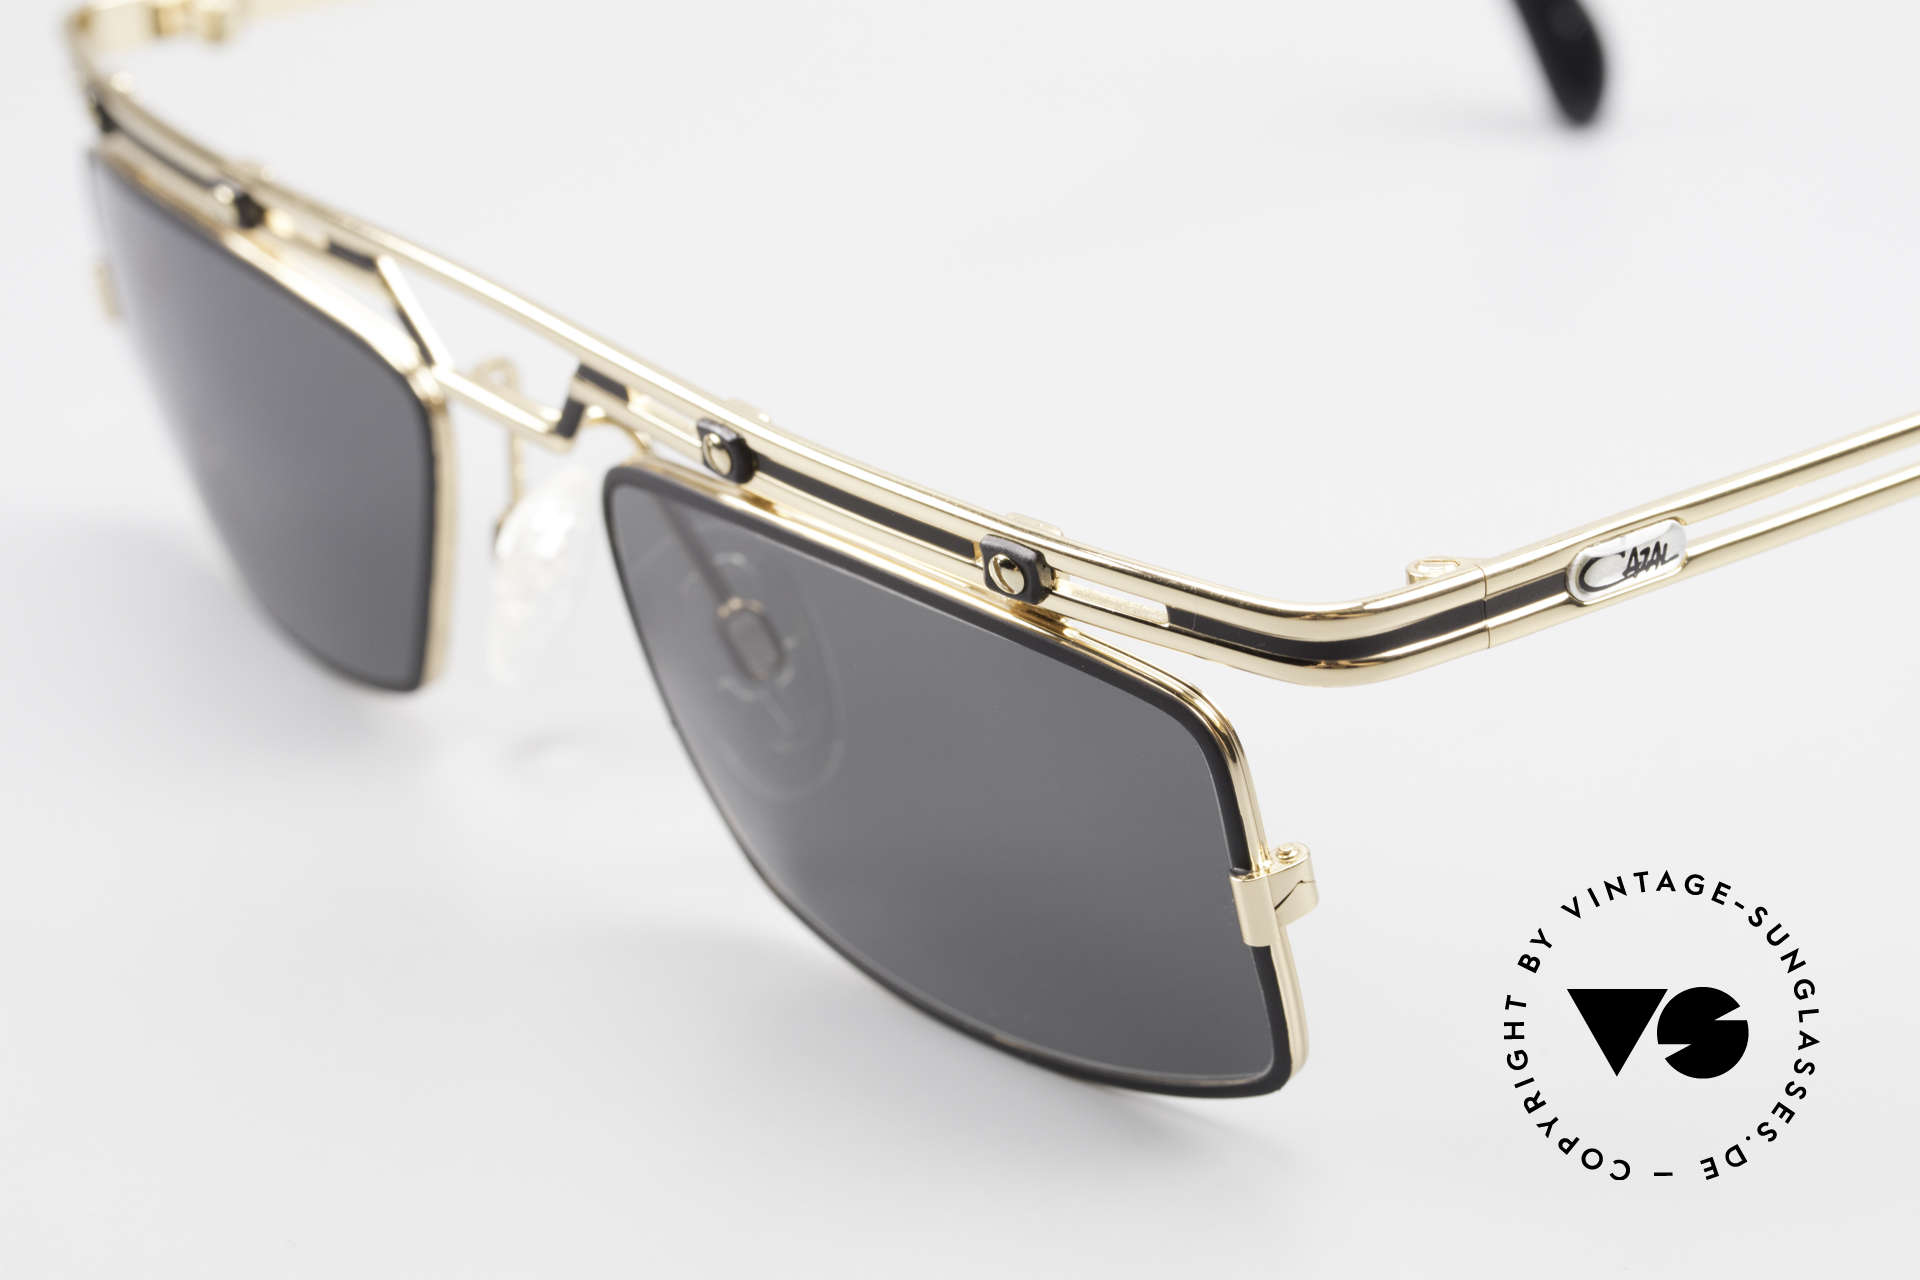 Cazal 975 Square Vintage Sunglasses 90's, tangible superior crafting quality (made in Germany), Made for Men